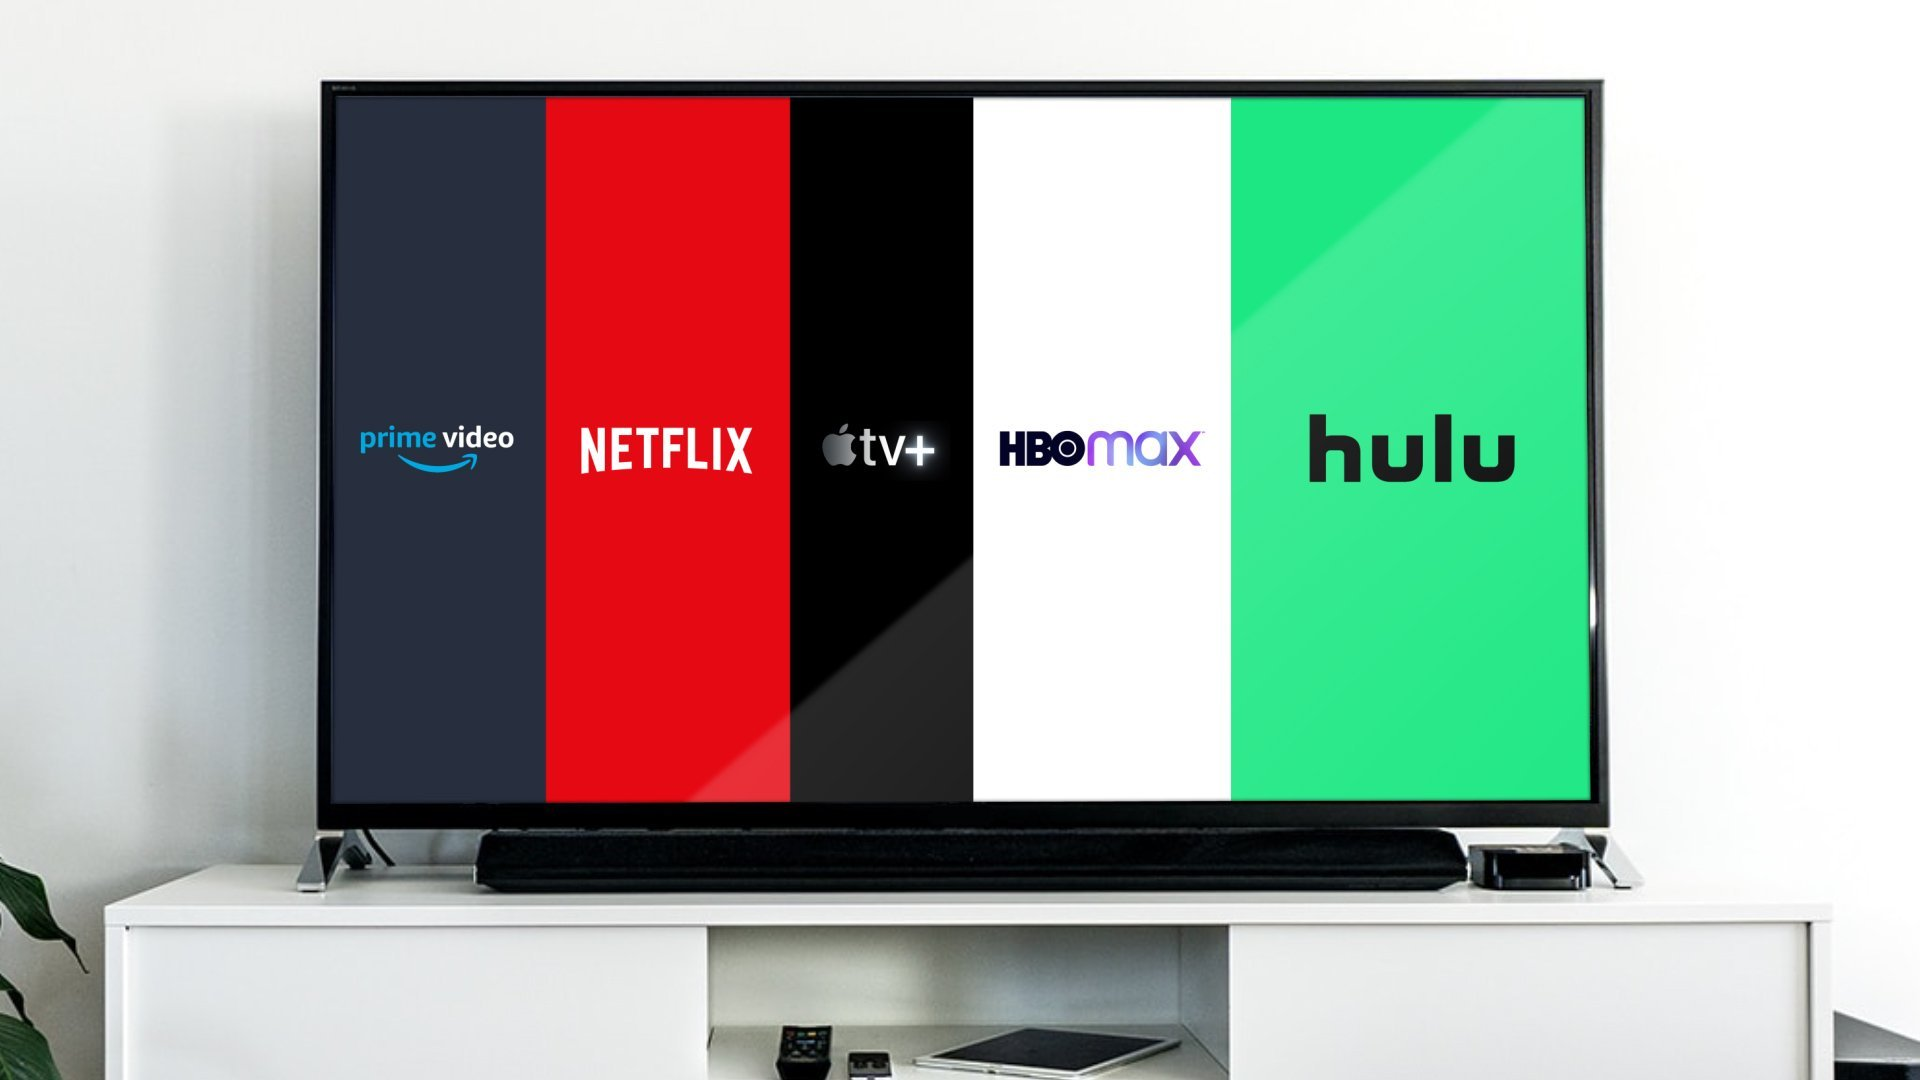 Hulu is raising the price of its live TV service for the second time this year